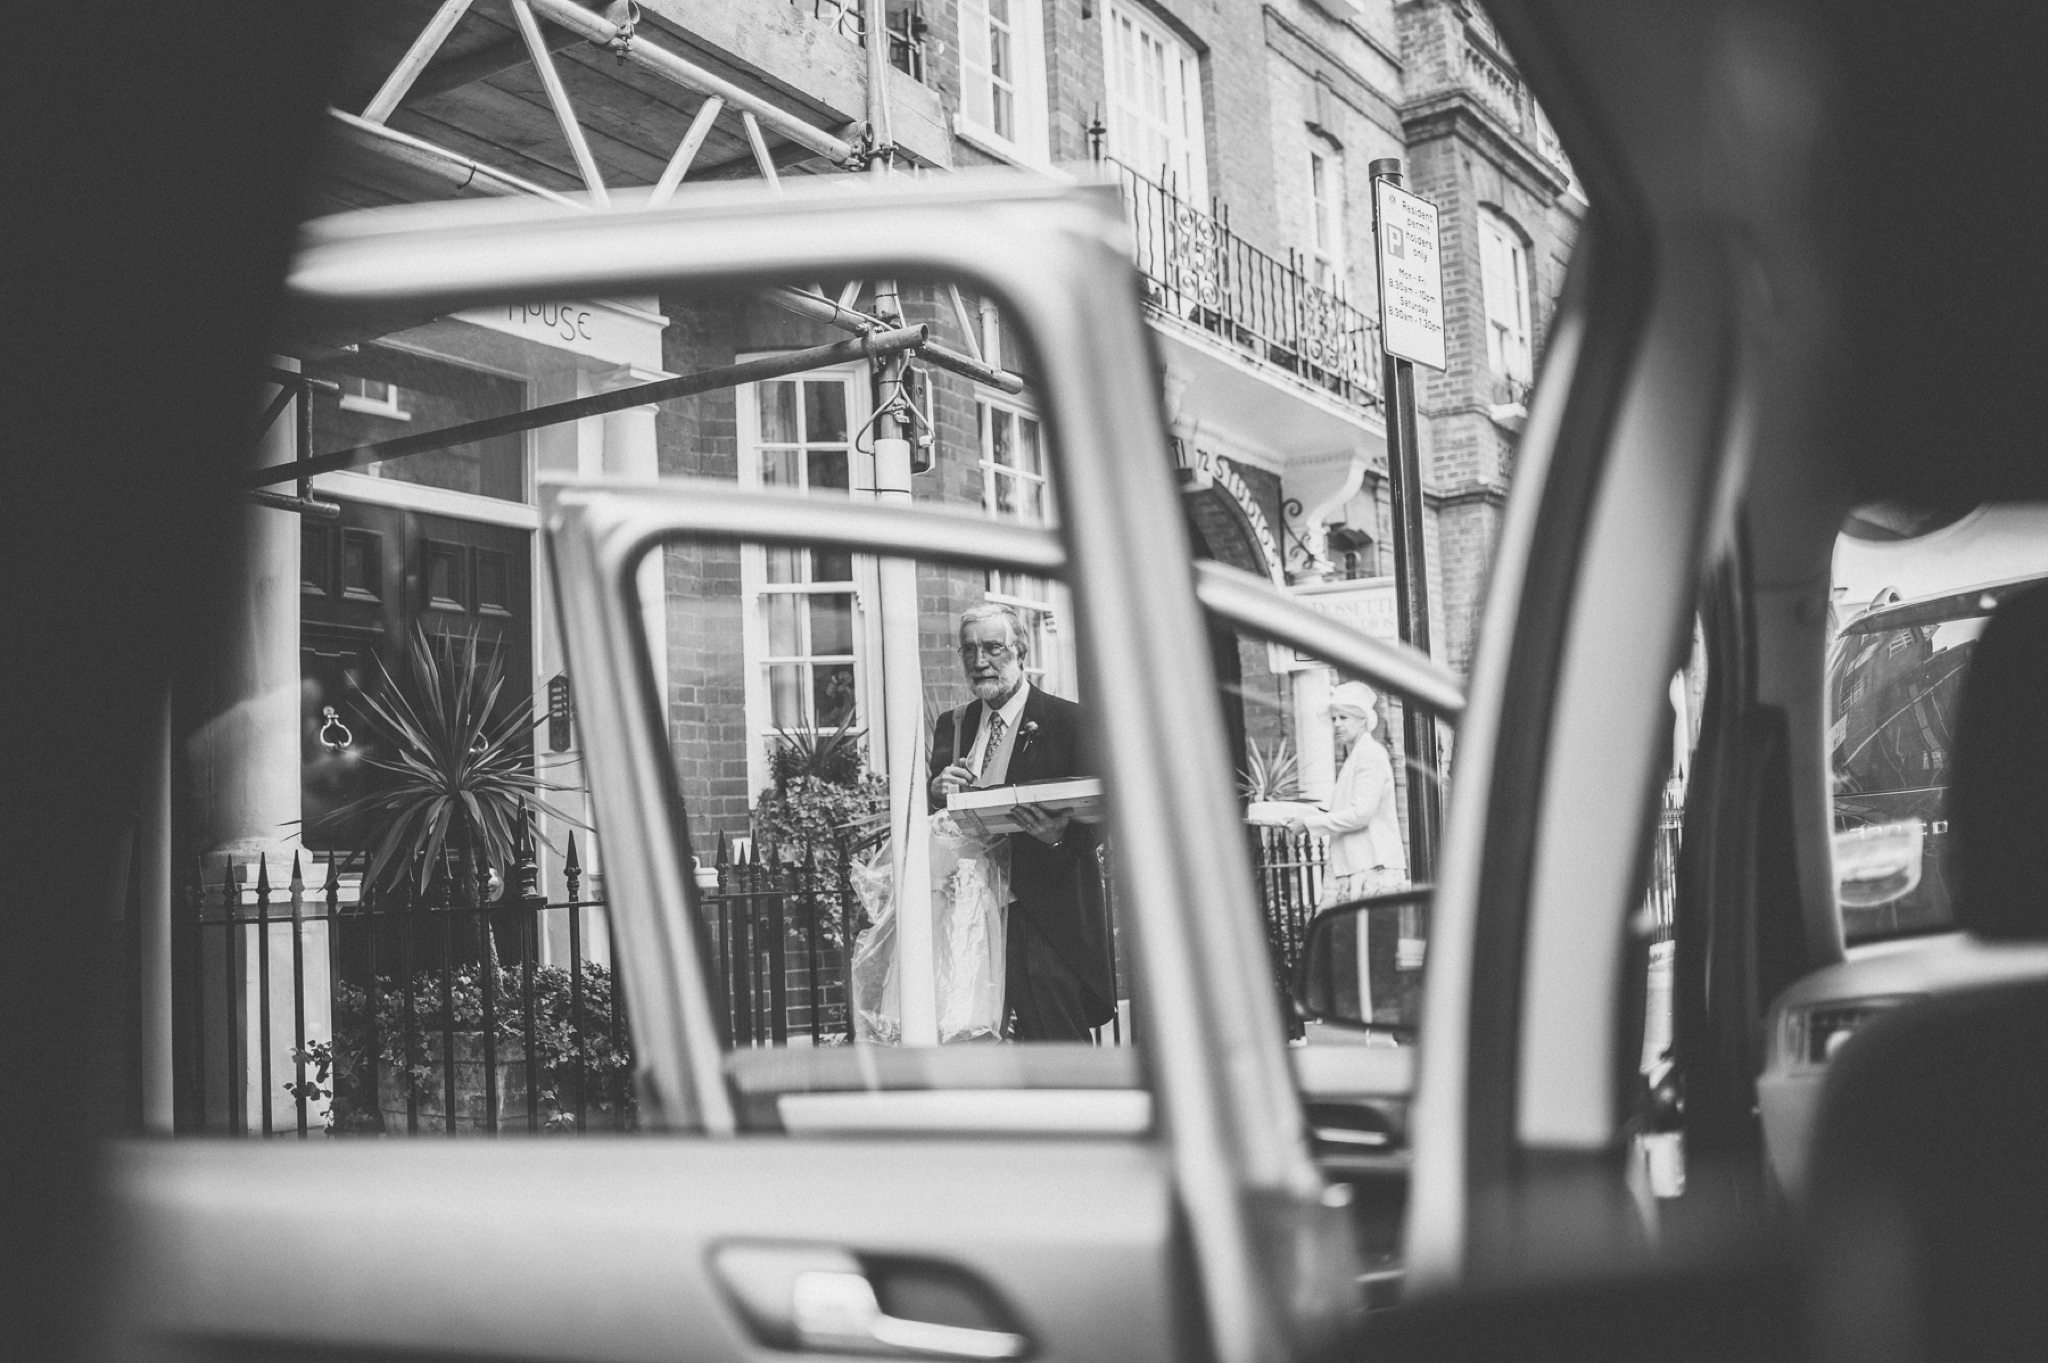 Groom's parents leaving for his Chelsea Wedding seen through the wedding car's windows